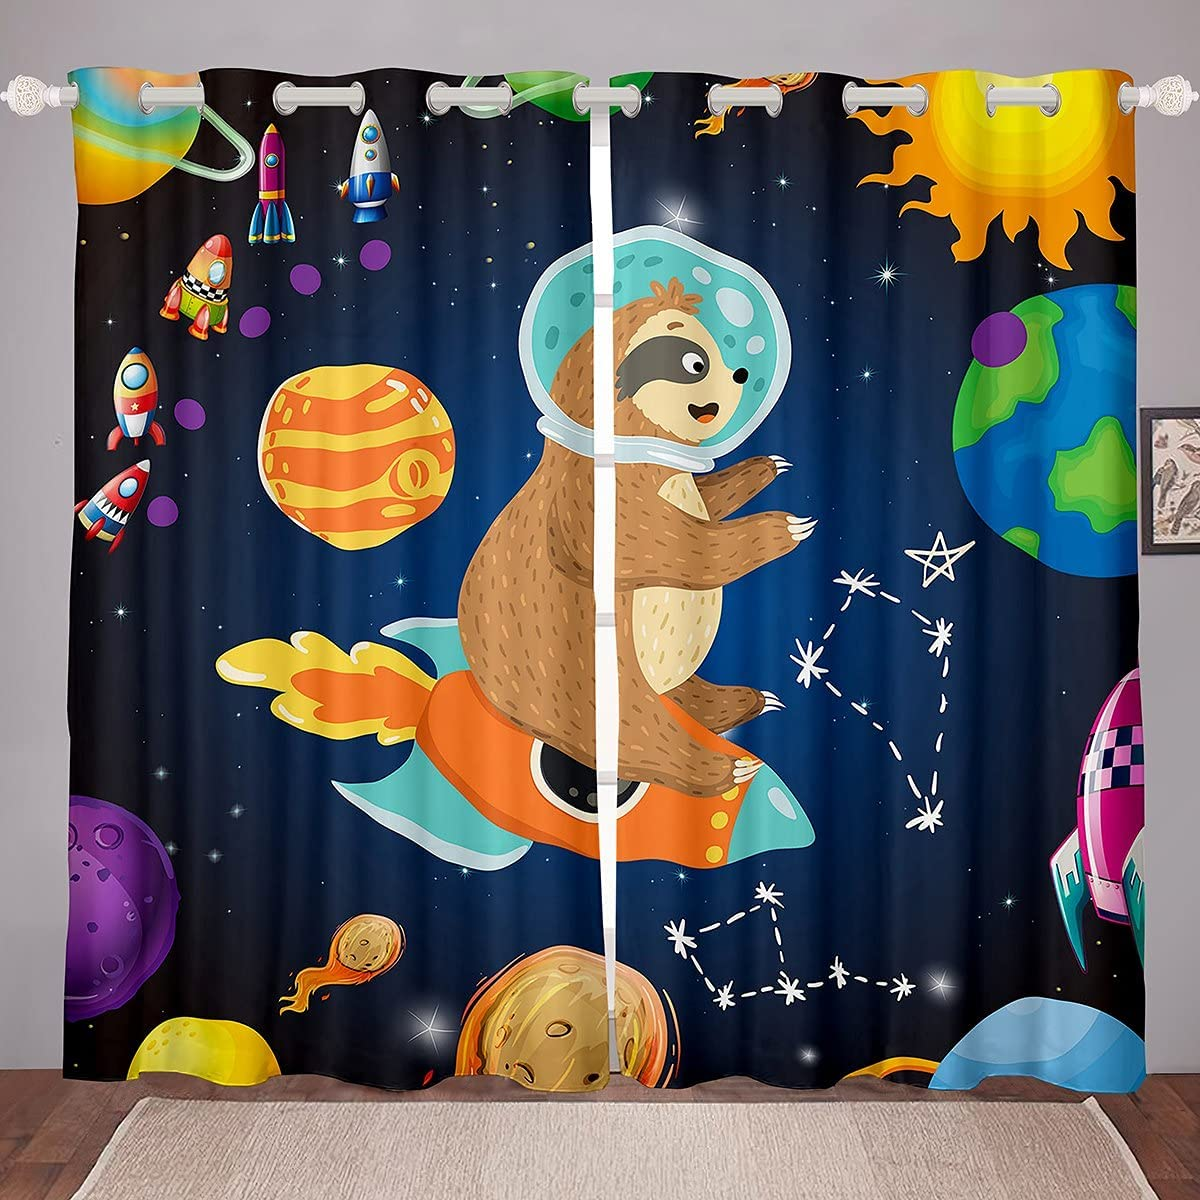 Space Rocket Curtains Sale price Sloth Astronaut Boy Drapes Kids 2021 new Window for